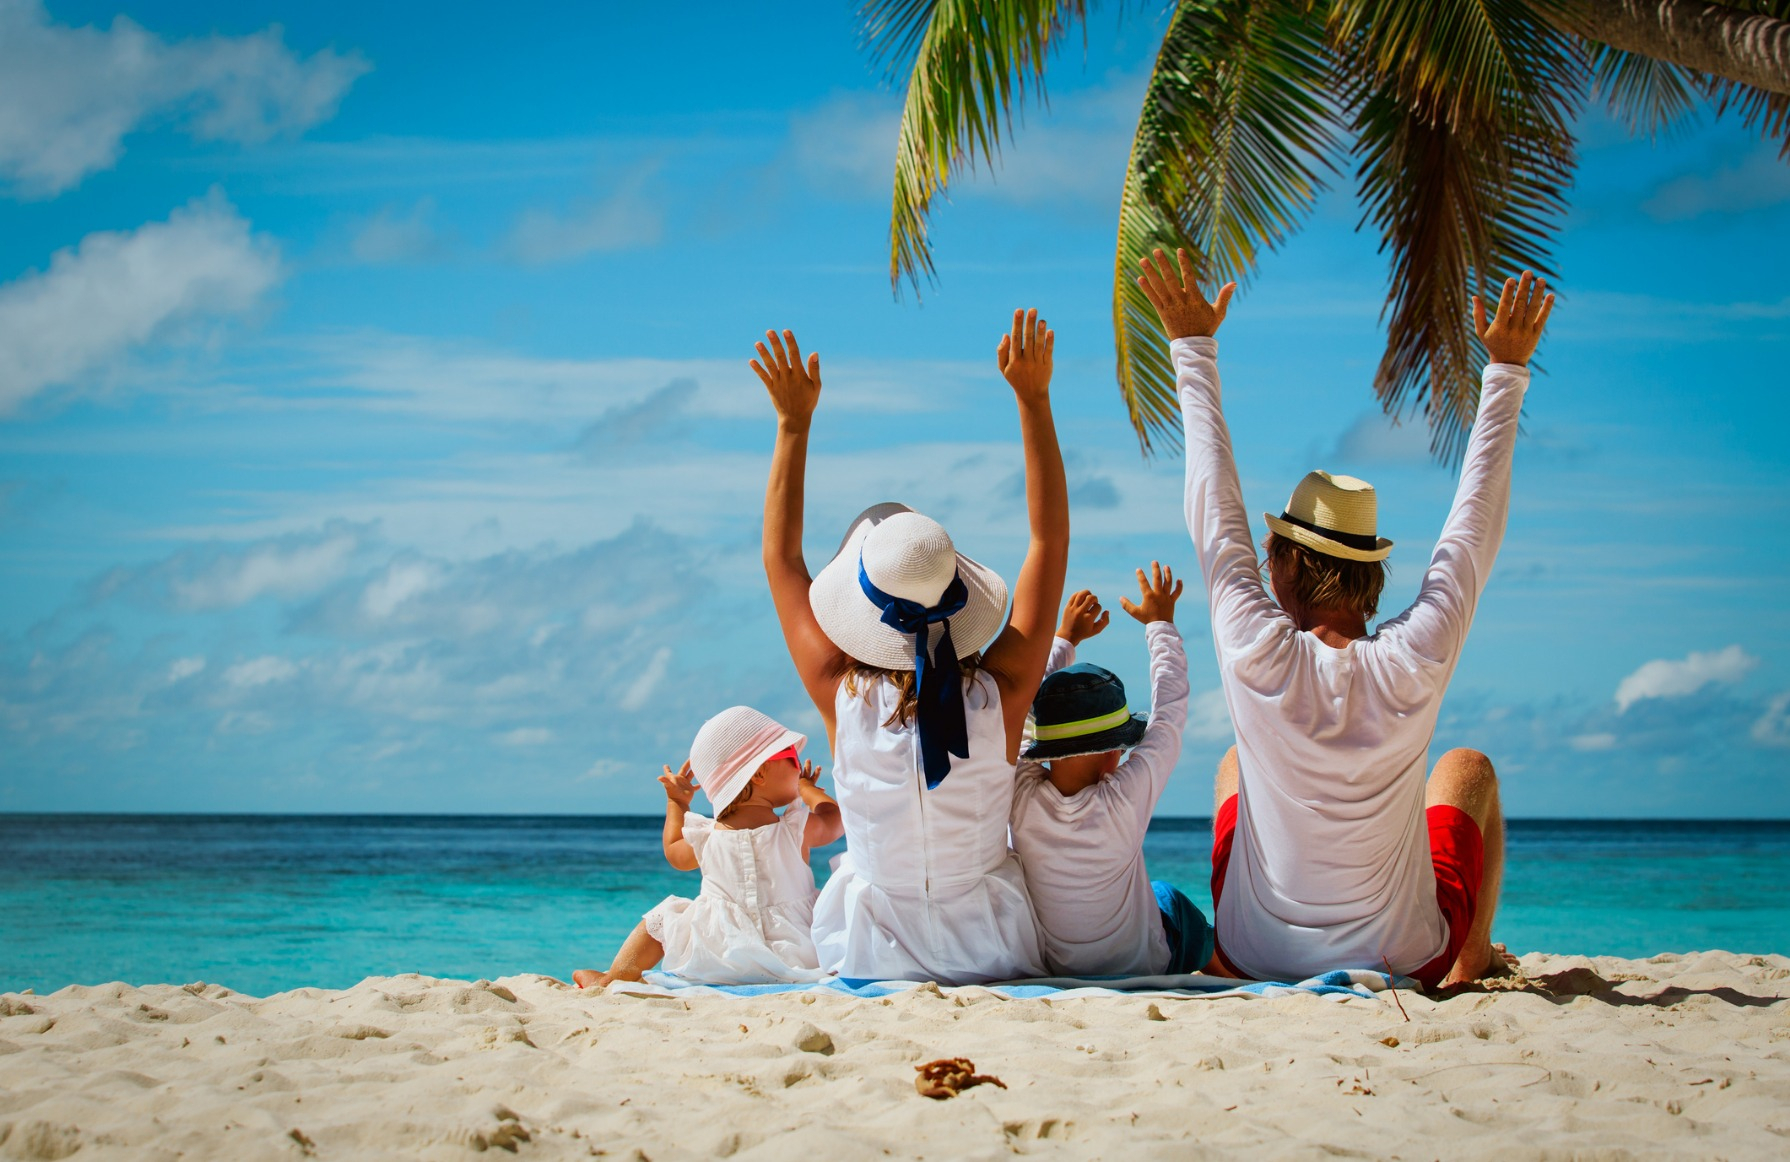 10 Fantastic Cheap Summer Vacation Ideas For Families 50 affordable family friendly summer trips 2021